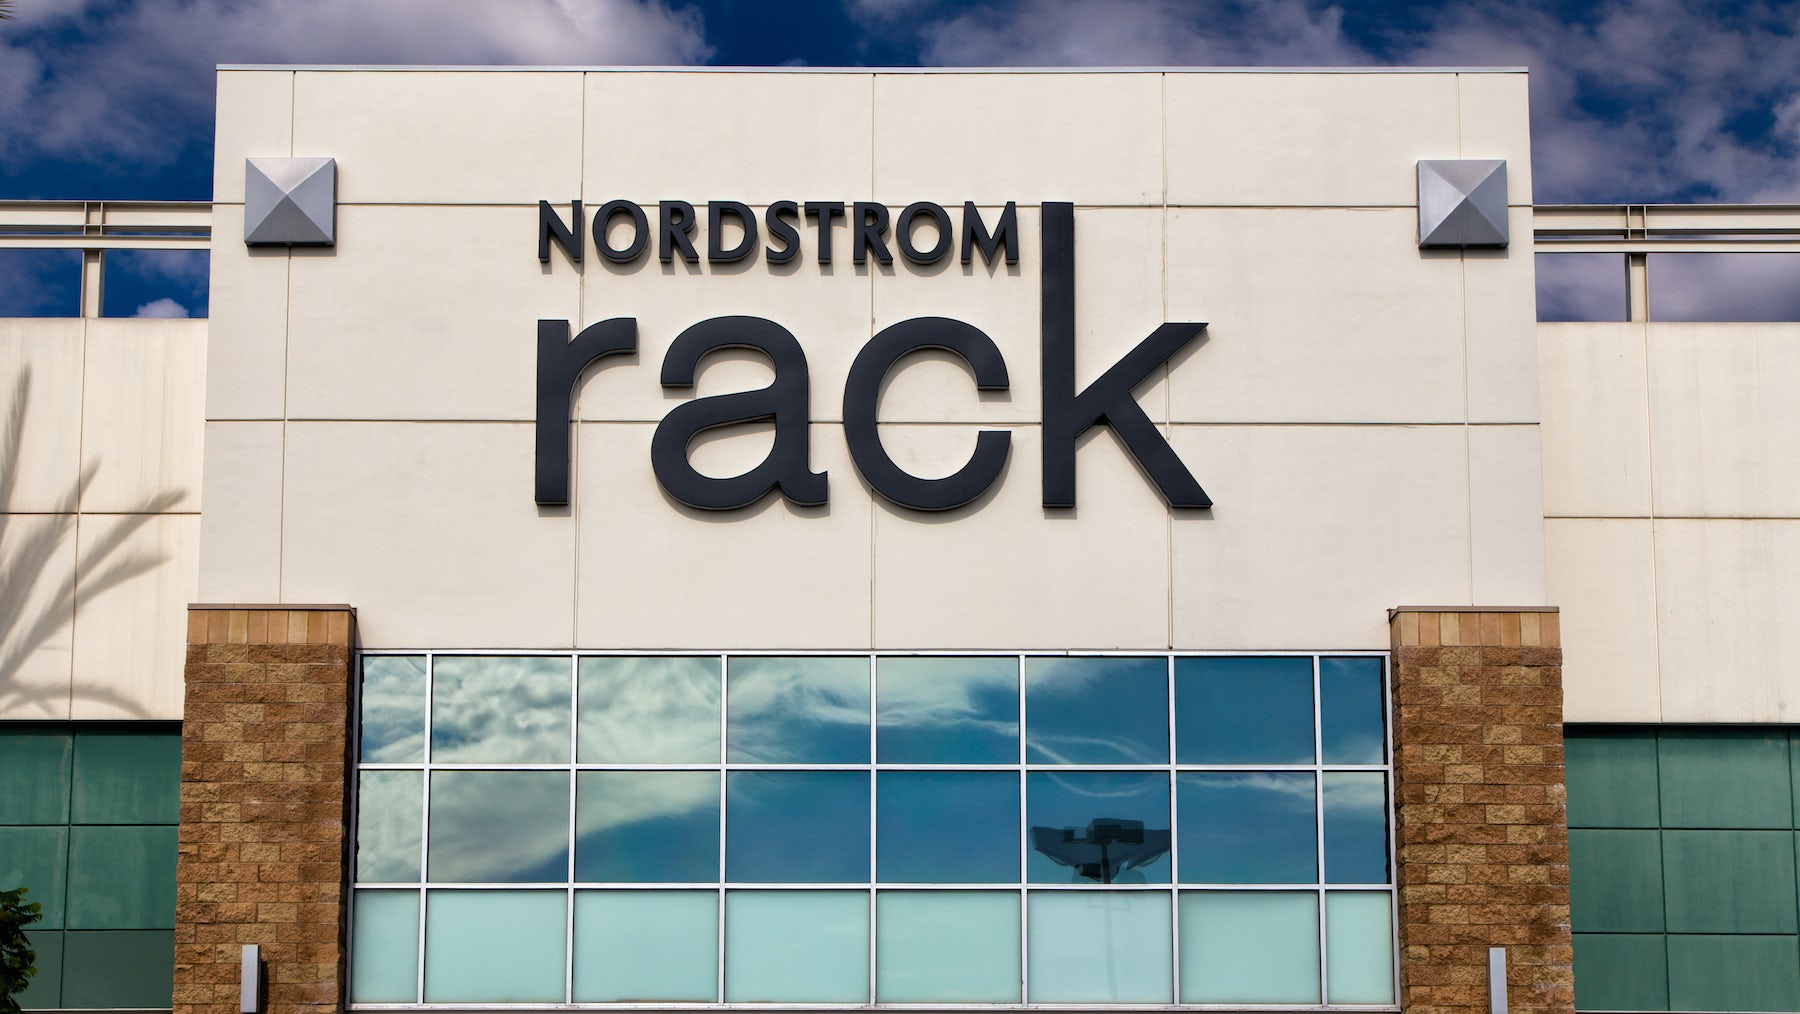 A Nordstrom Rack off-price retail store | Source: Shutterstock